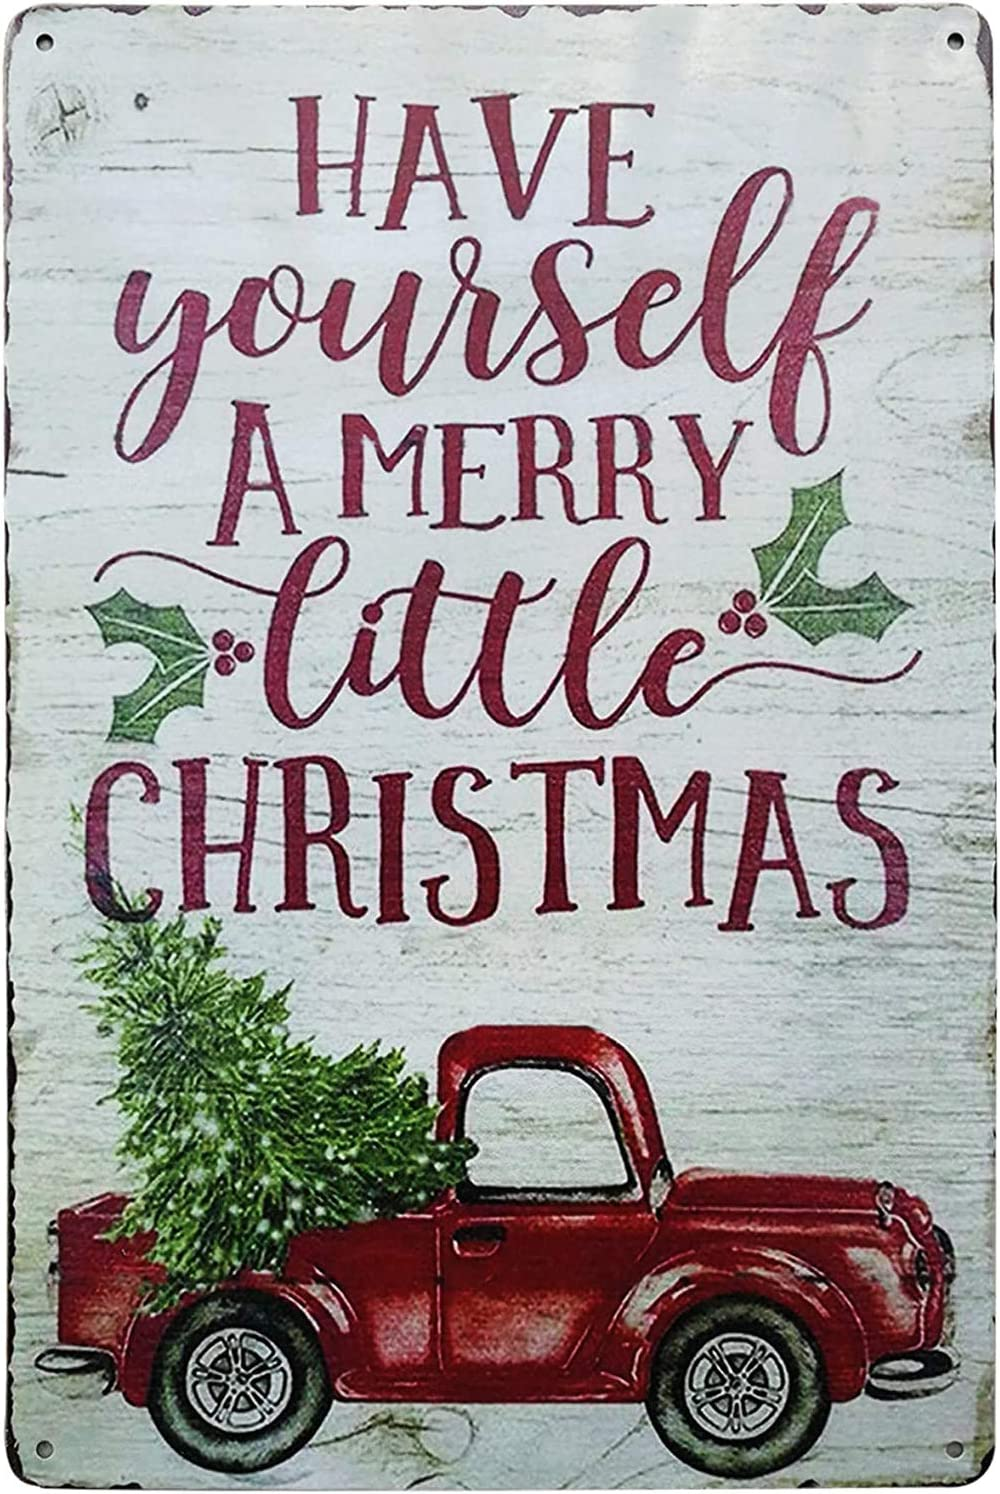 Have Yourself Merry Little Christmas Plaque Door Wall Metal Sign Hanging Decorations Gift 12x8 inch (Sing-03)